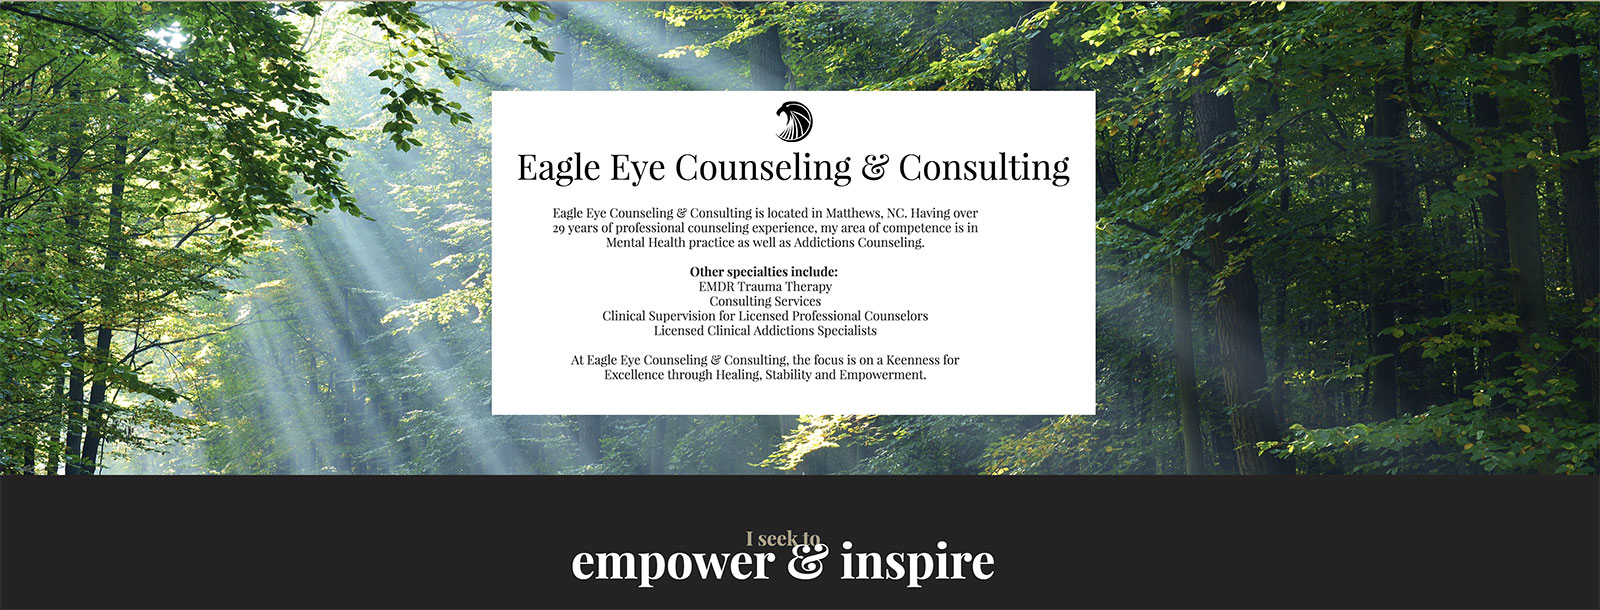 Eagle Eye Counseling Website | AdChix Website and Graphic Design